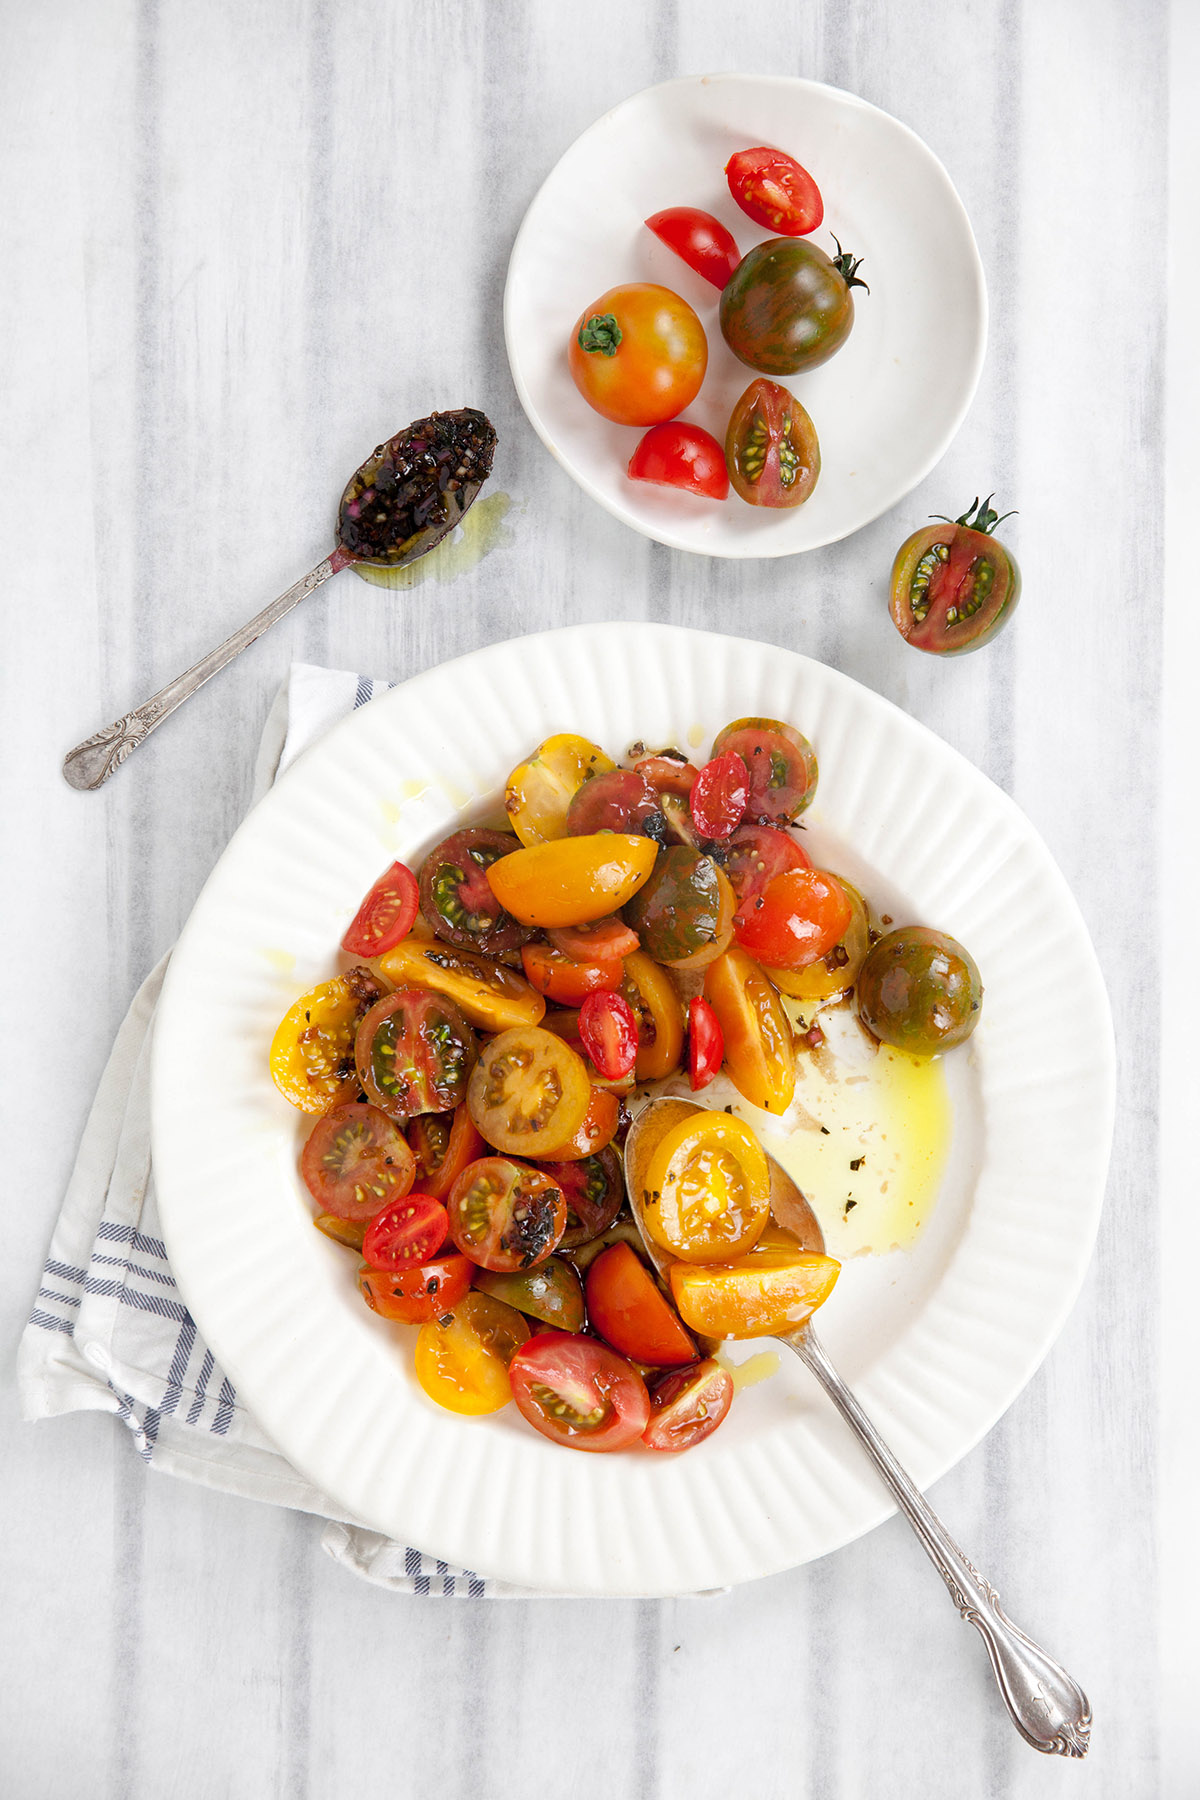 Simply Marinated Heirloom Tomatoes